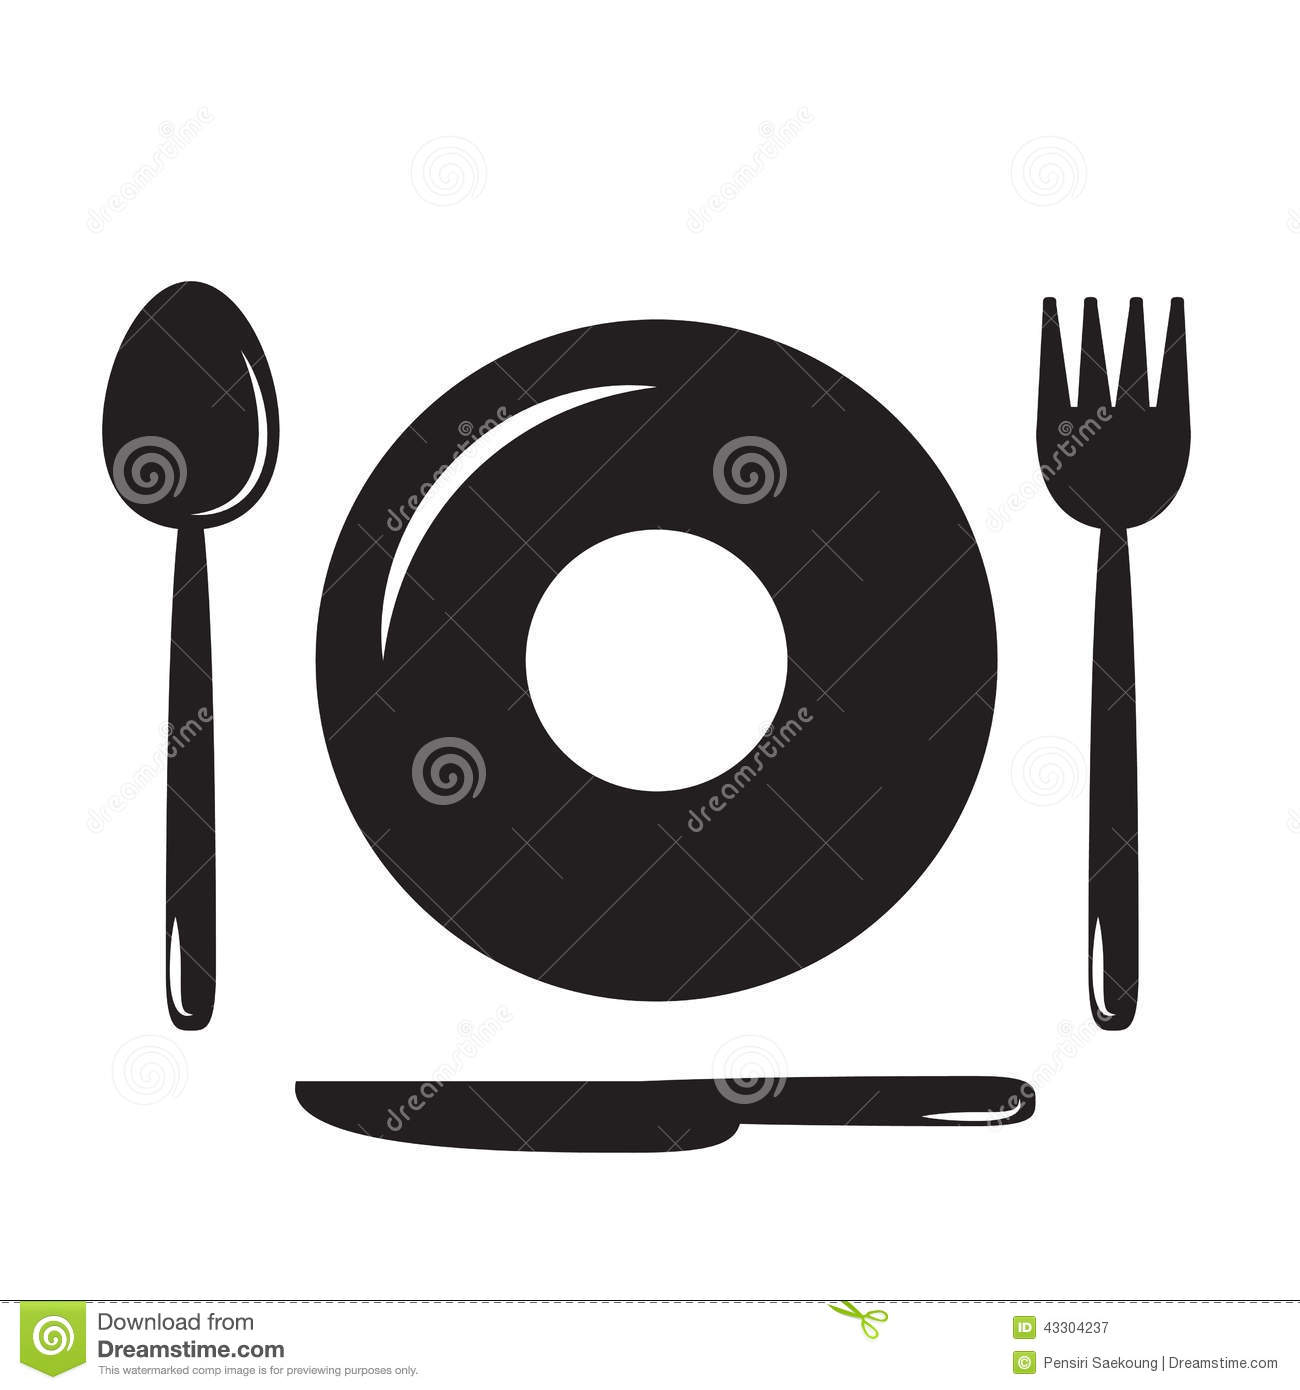 Plates Spoons Forks And Knivesfood Iconfood Symbol